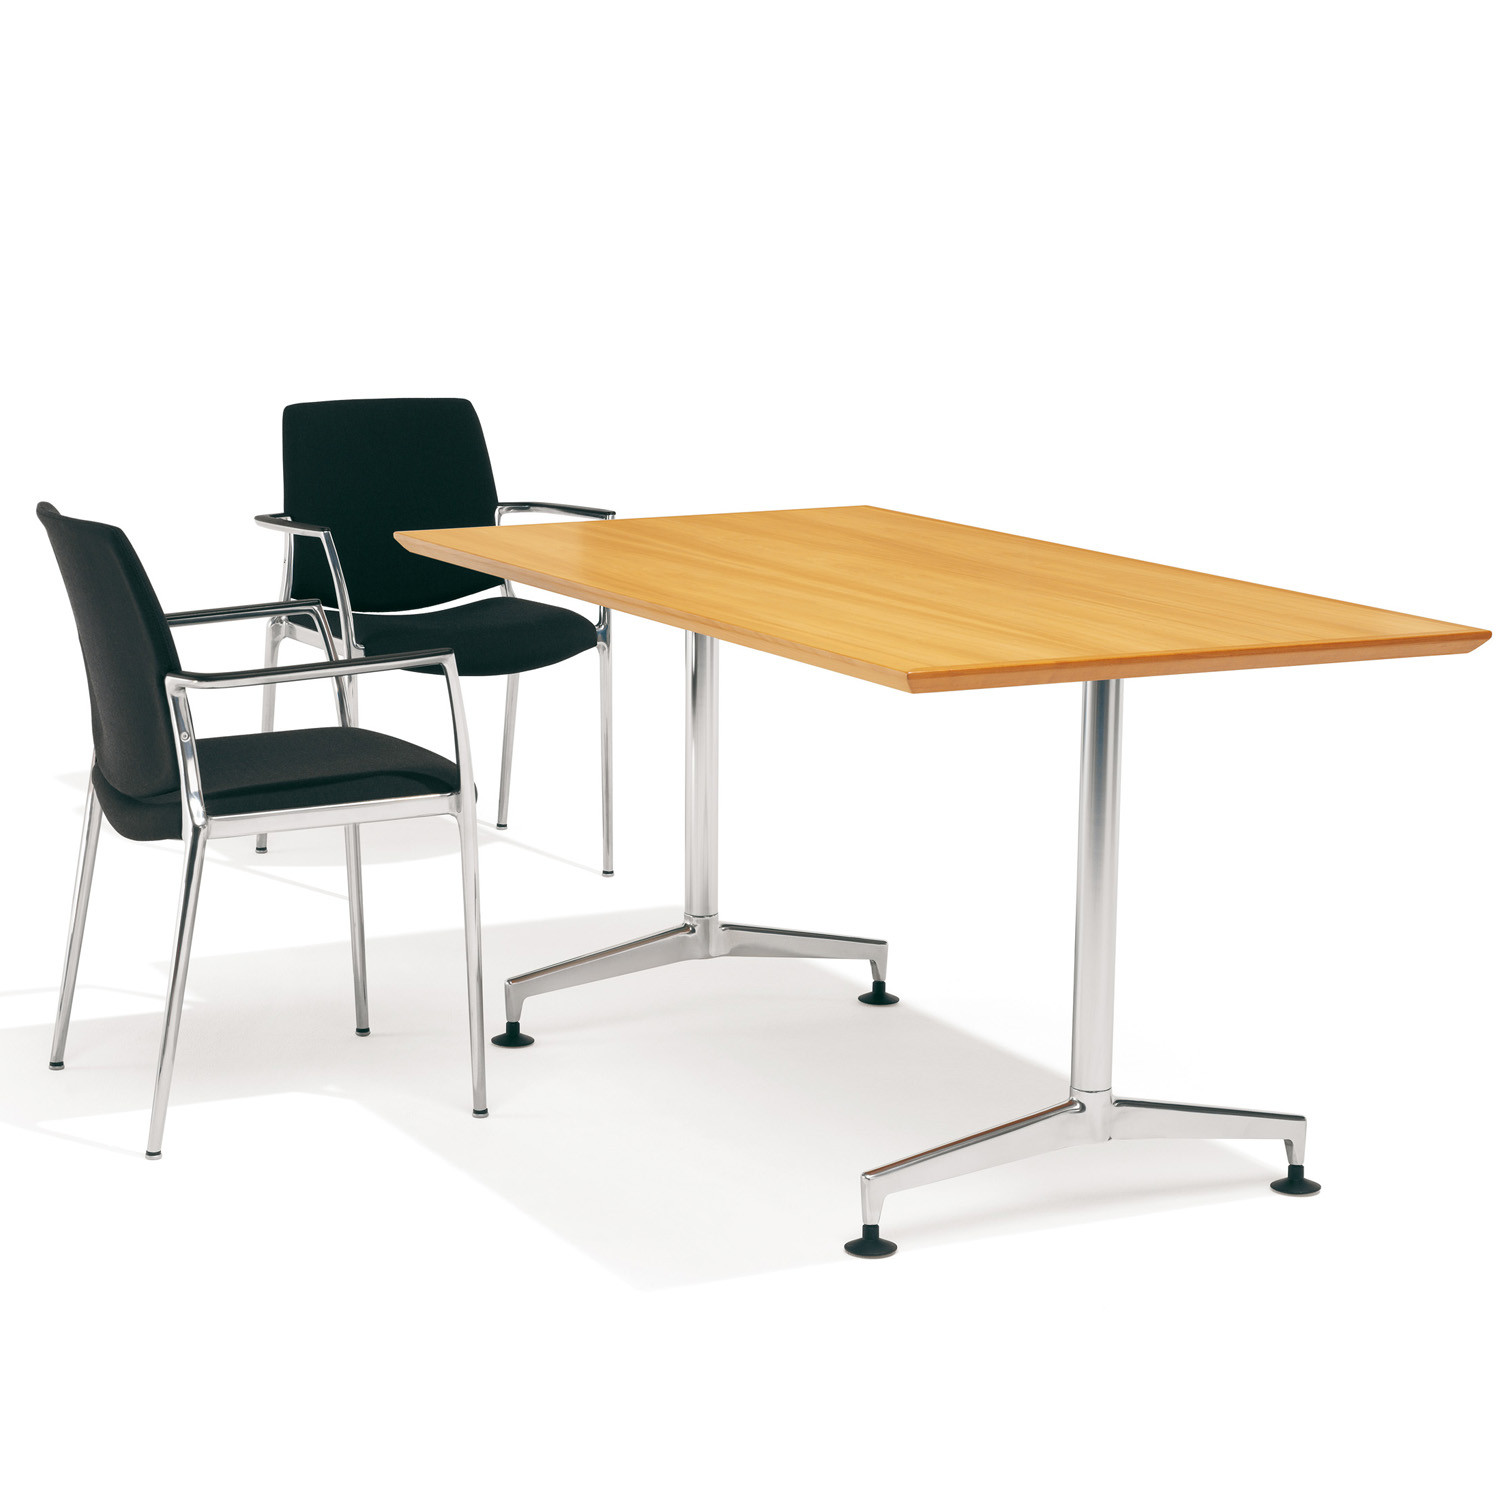 Ona Desk Modular Conference Tables Apres Furniture - Modular conference table system